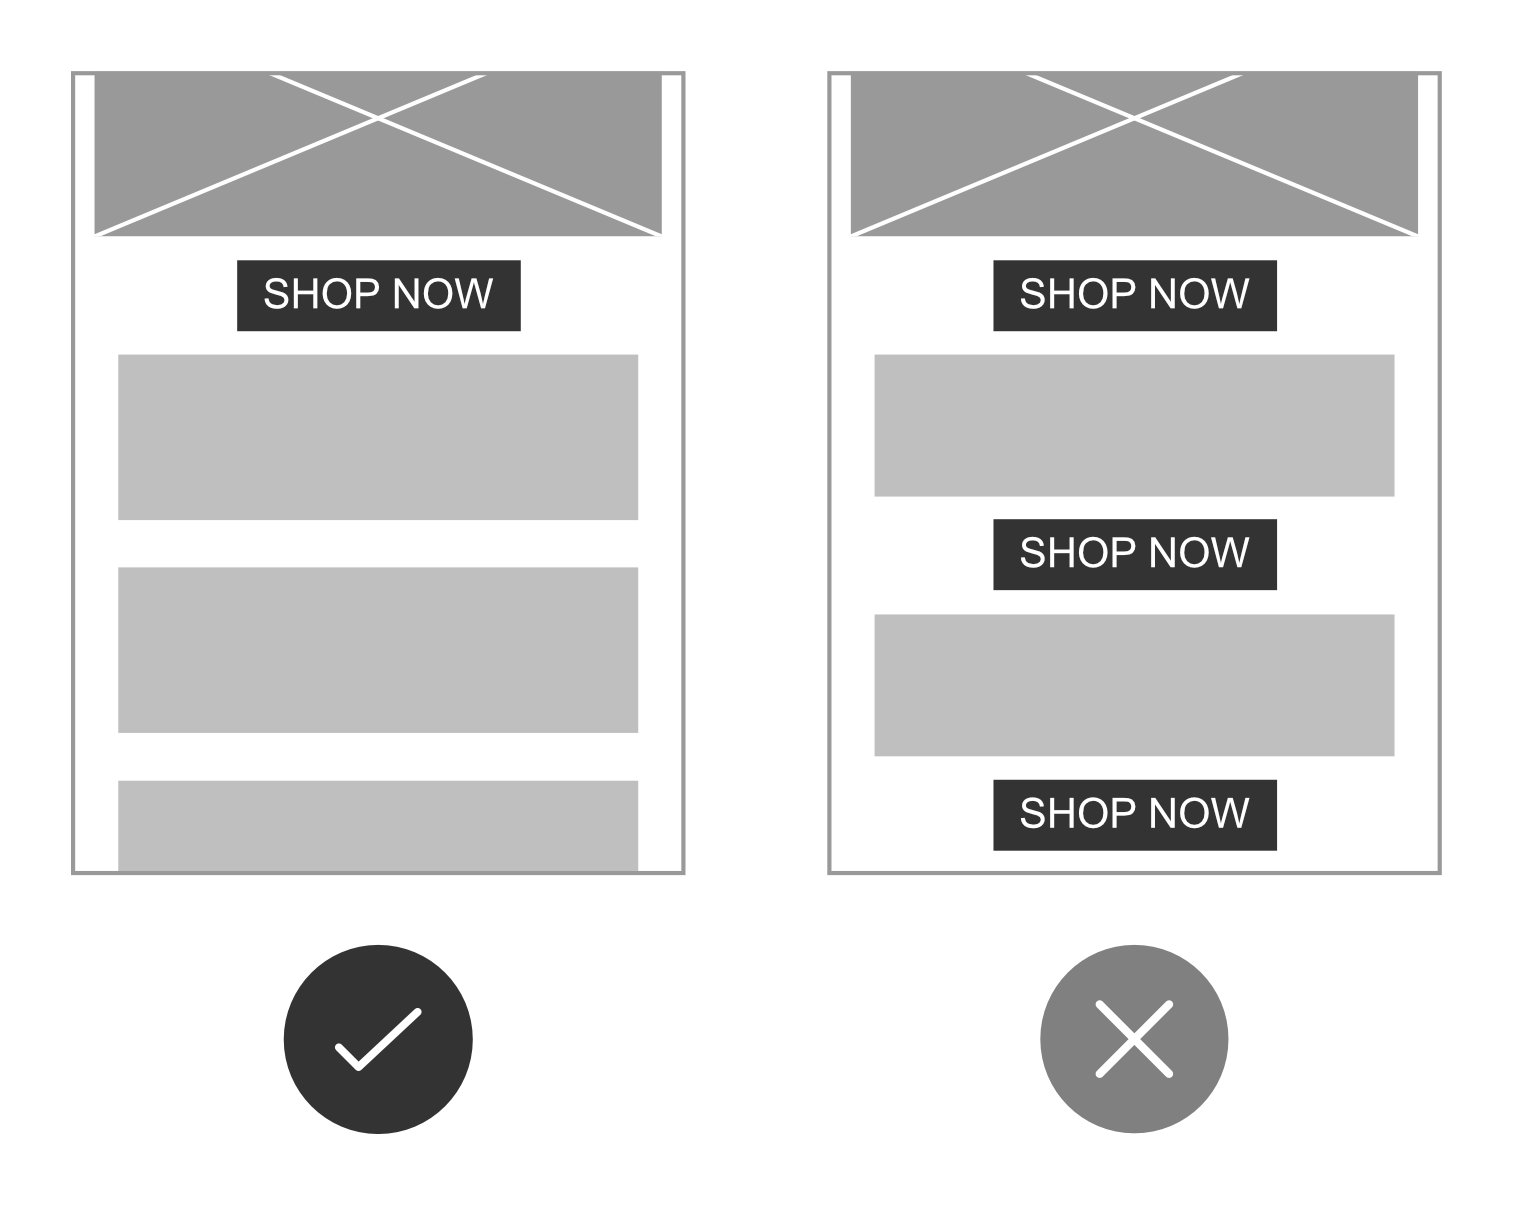 Here's how to design ecommerce CTAs that convert